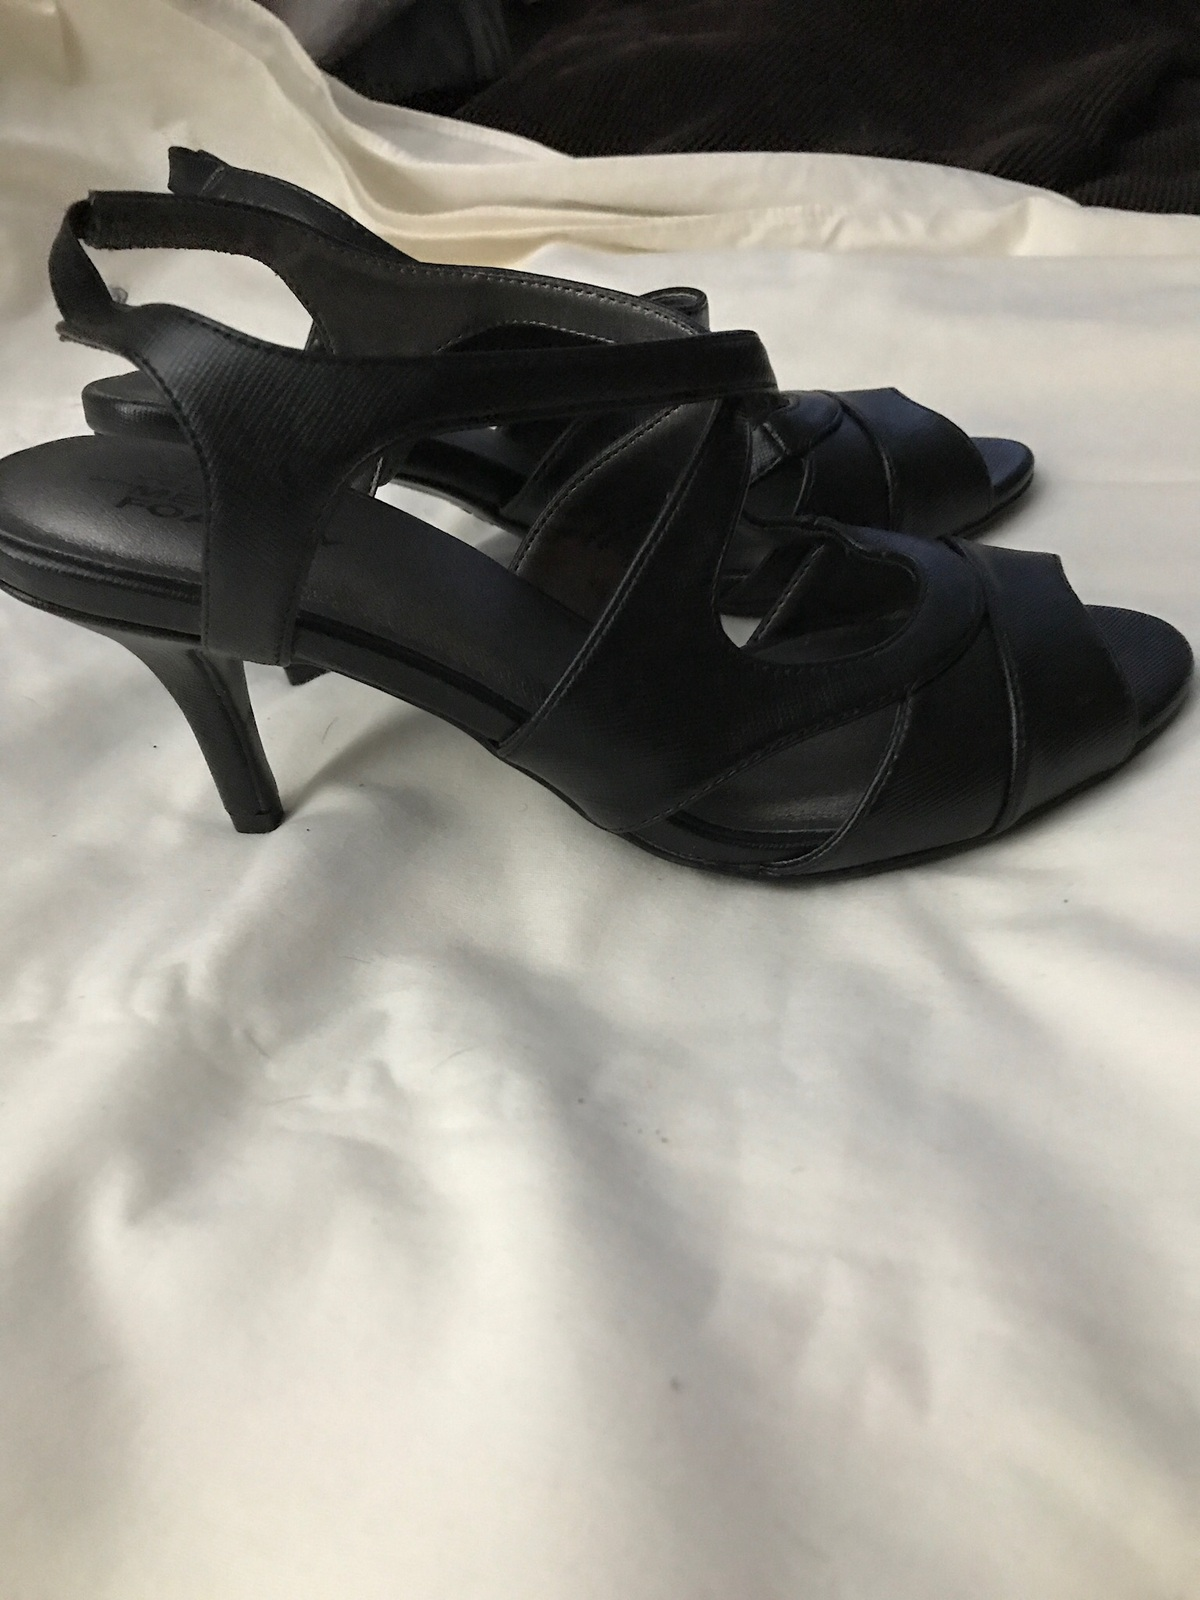 Women's Life Style High Heel Shoe with Memory Foam Size 7.